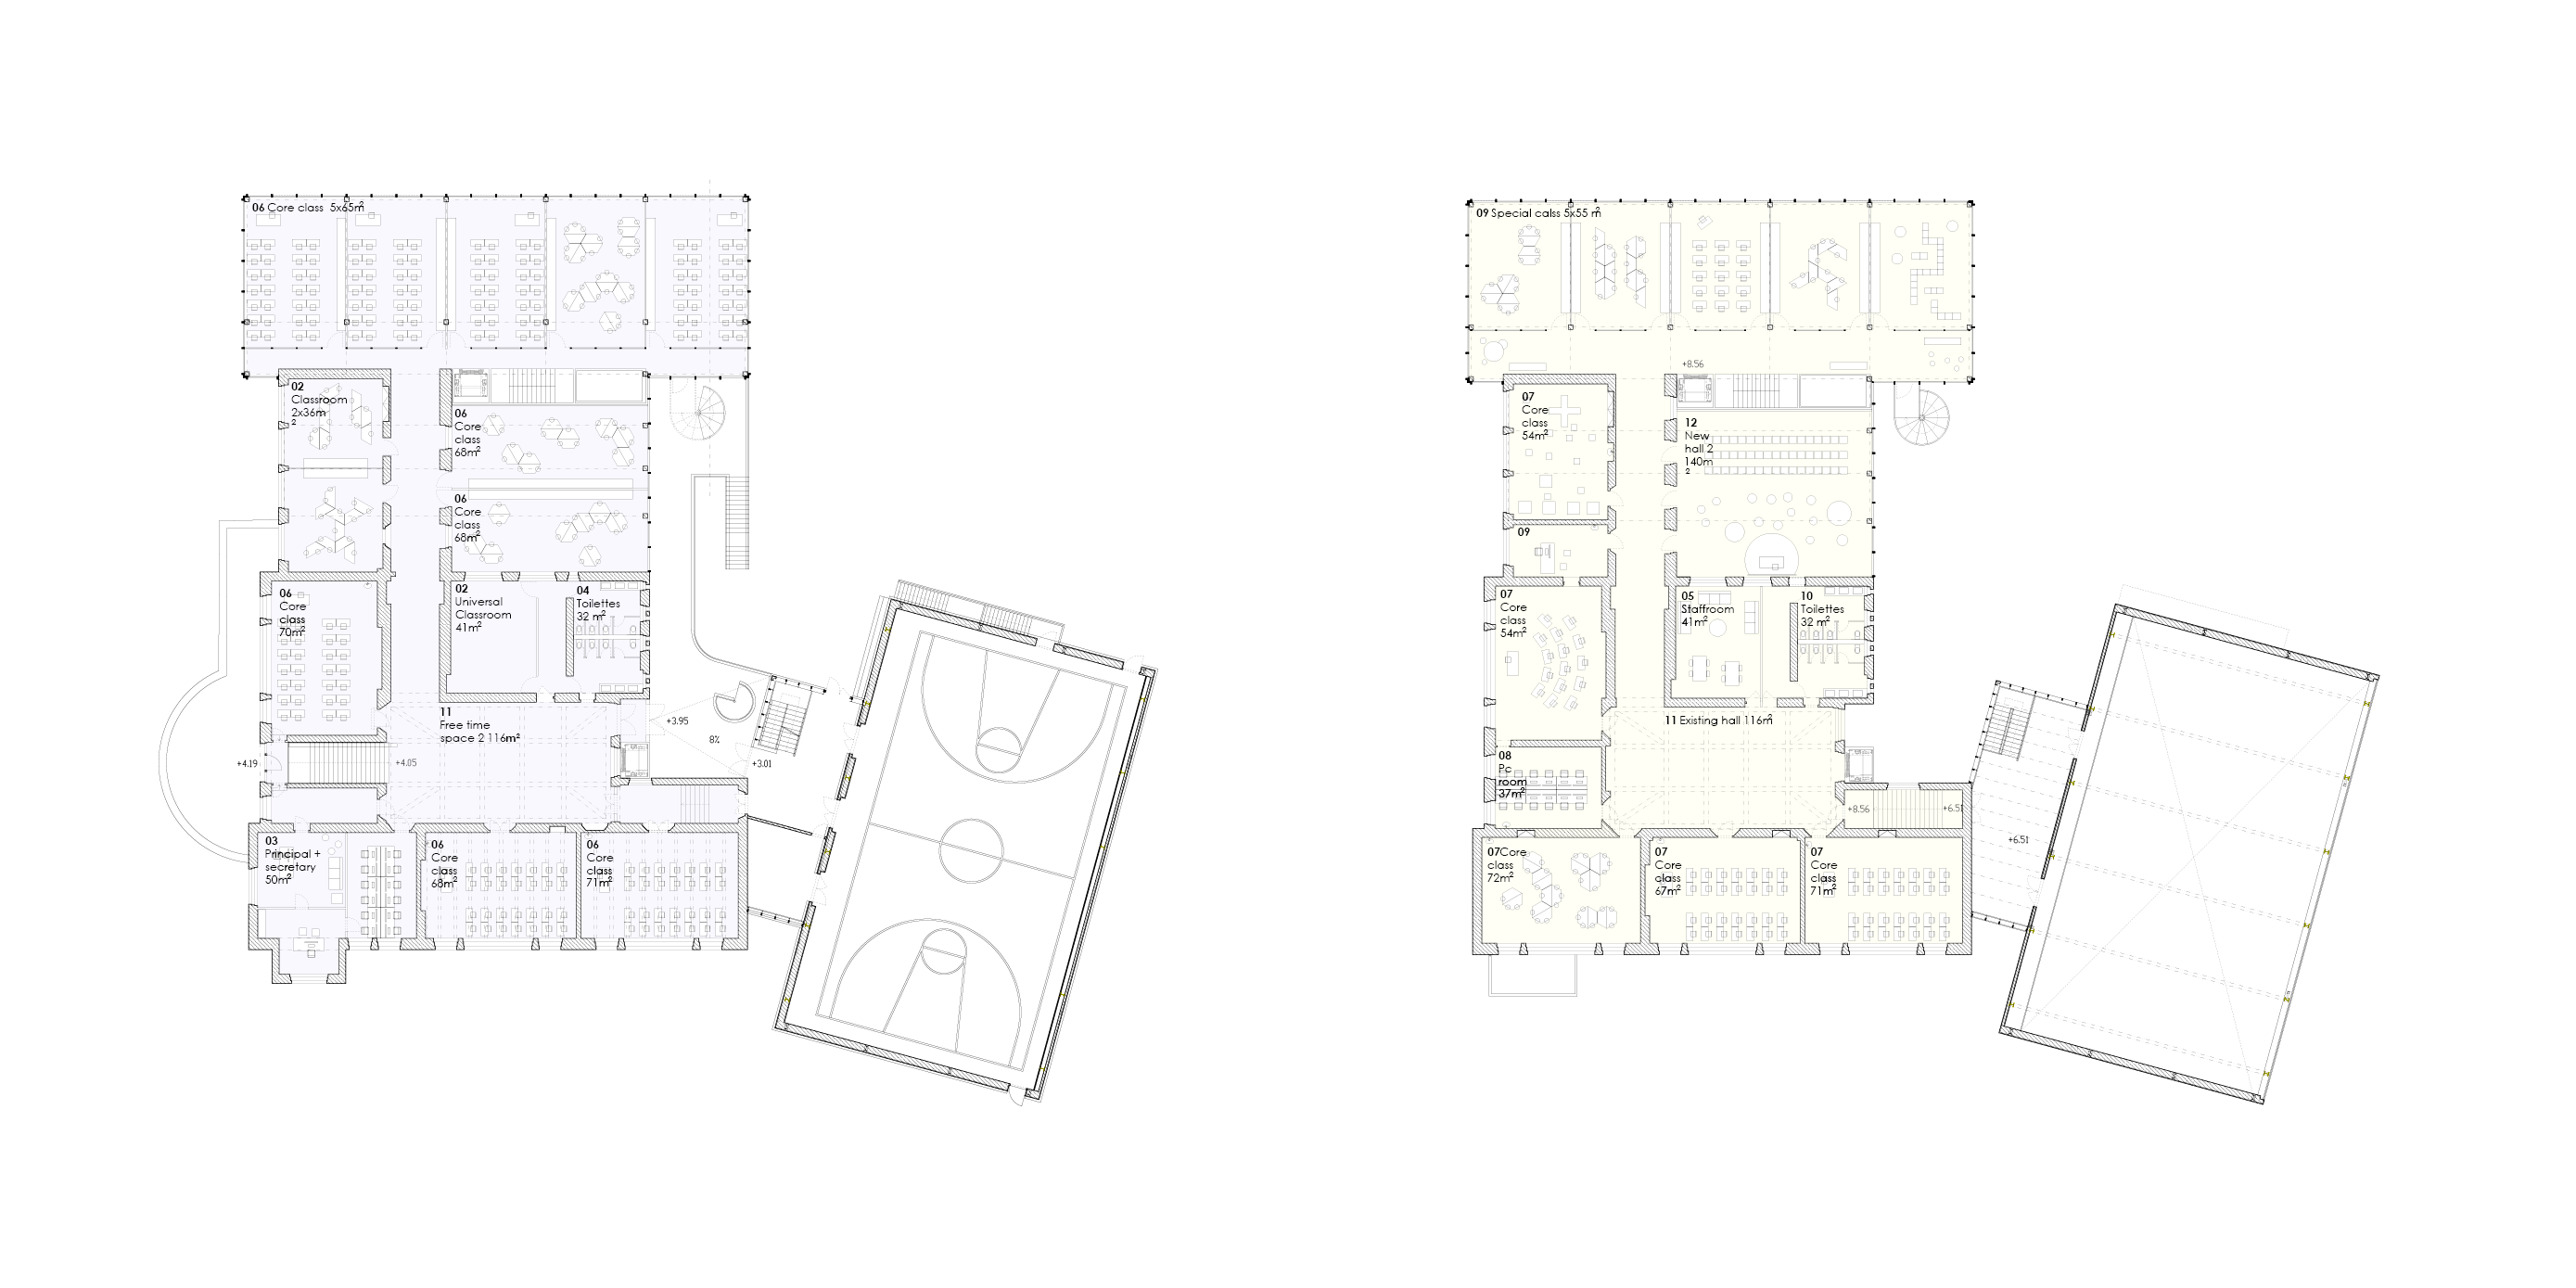 First and second floors plans